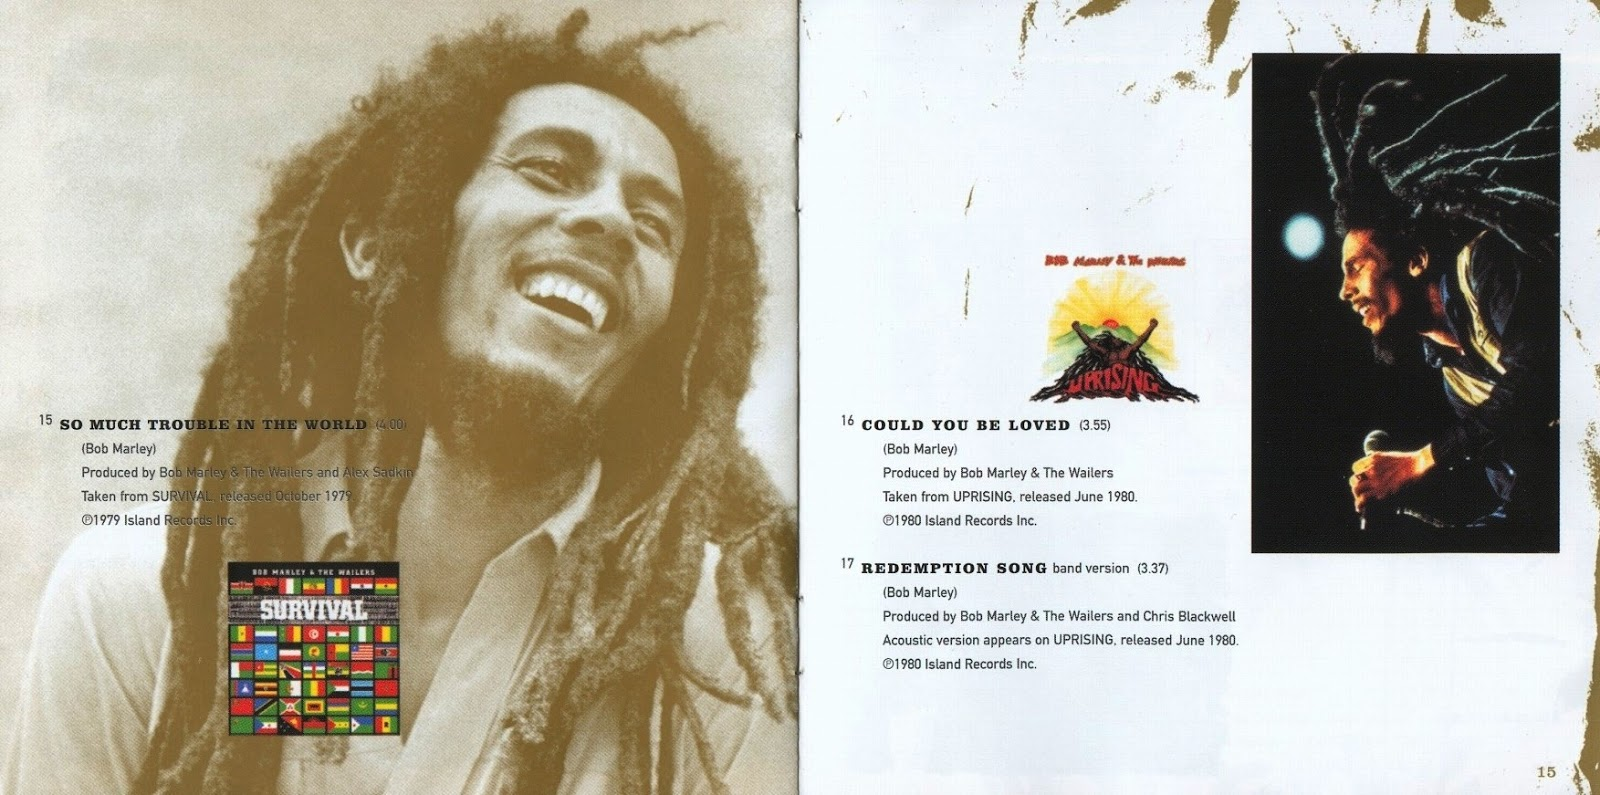 13 Who Colt The Game Previously Unreleased On A Bob Marley Wailers Album